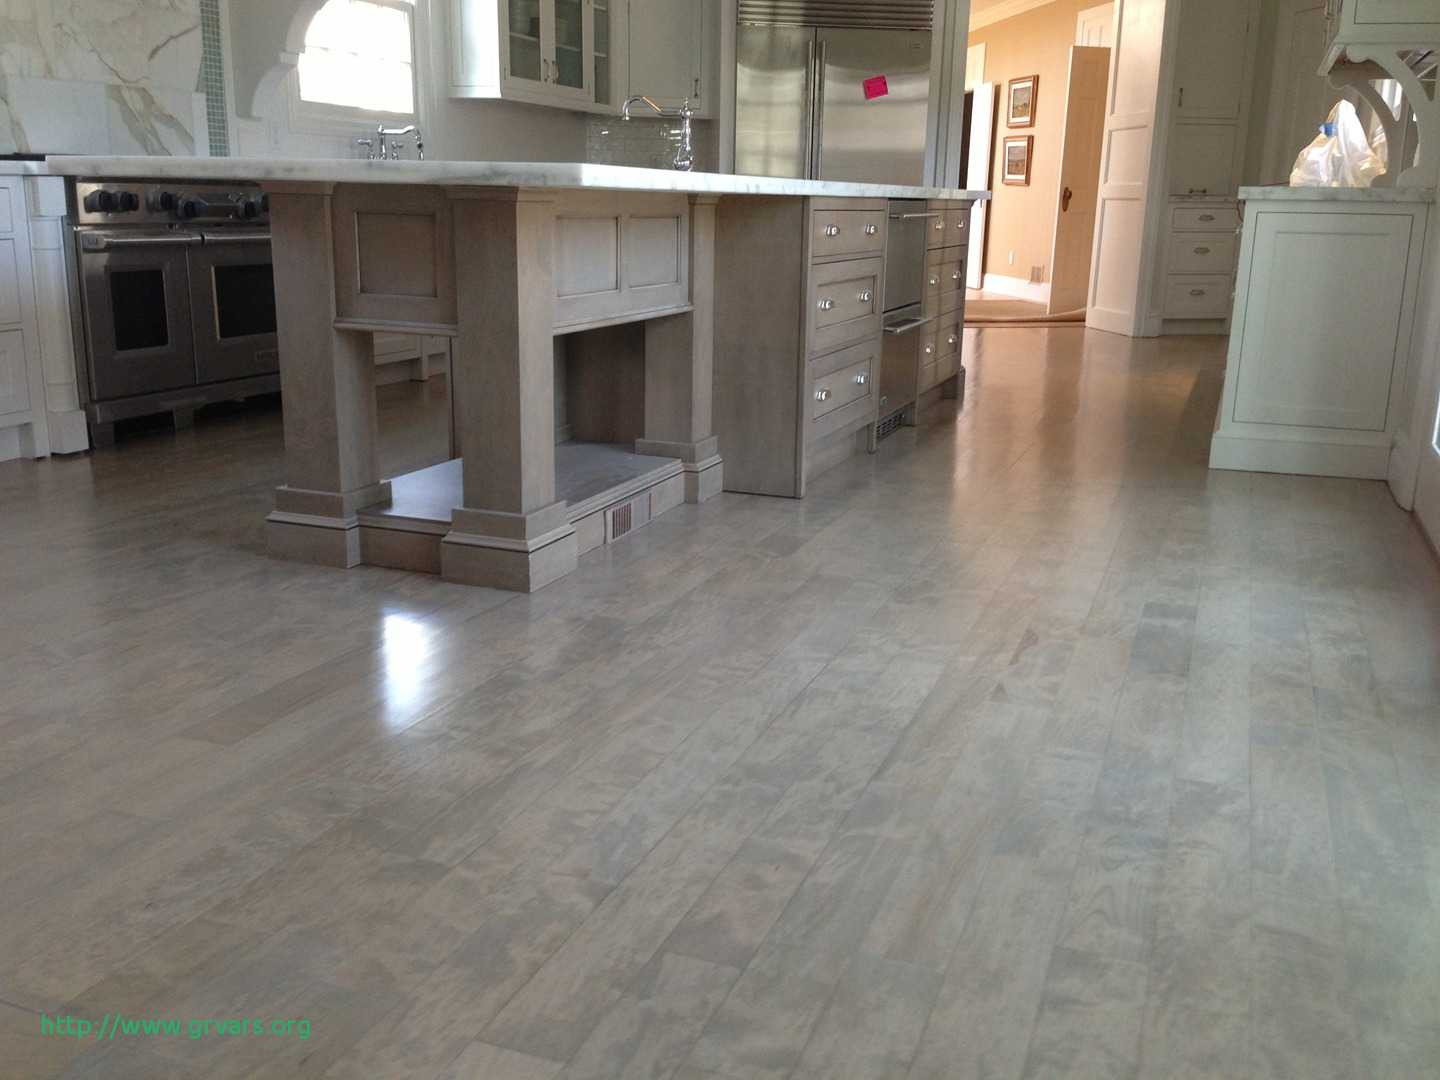 Hardwood Floor Installation atlanta Of 16 Charmant Step by Step Hardwood Floor Installation Ideas Blog with Step by Step Hardwood Floor Installation Inspirant J R Hardwood Floors L L C Home